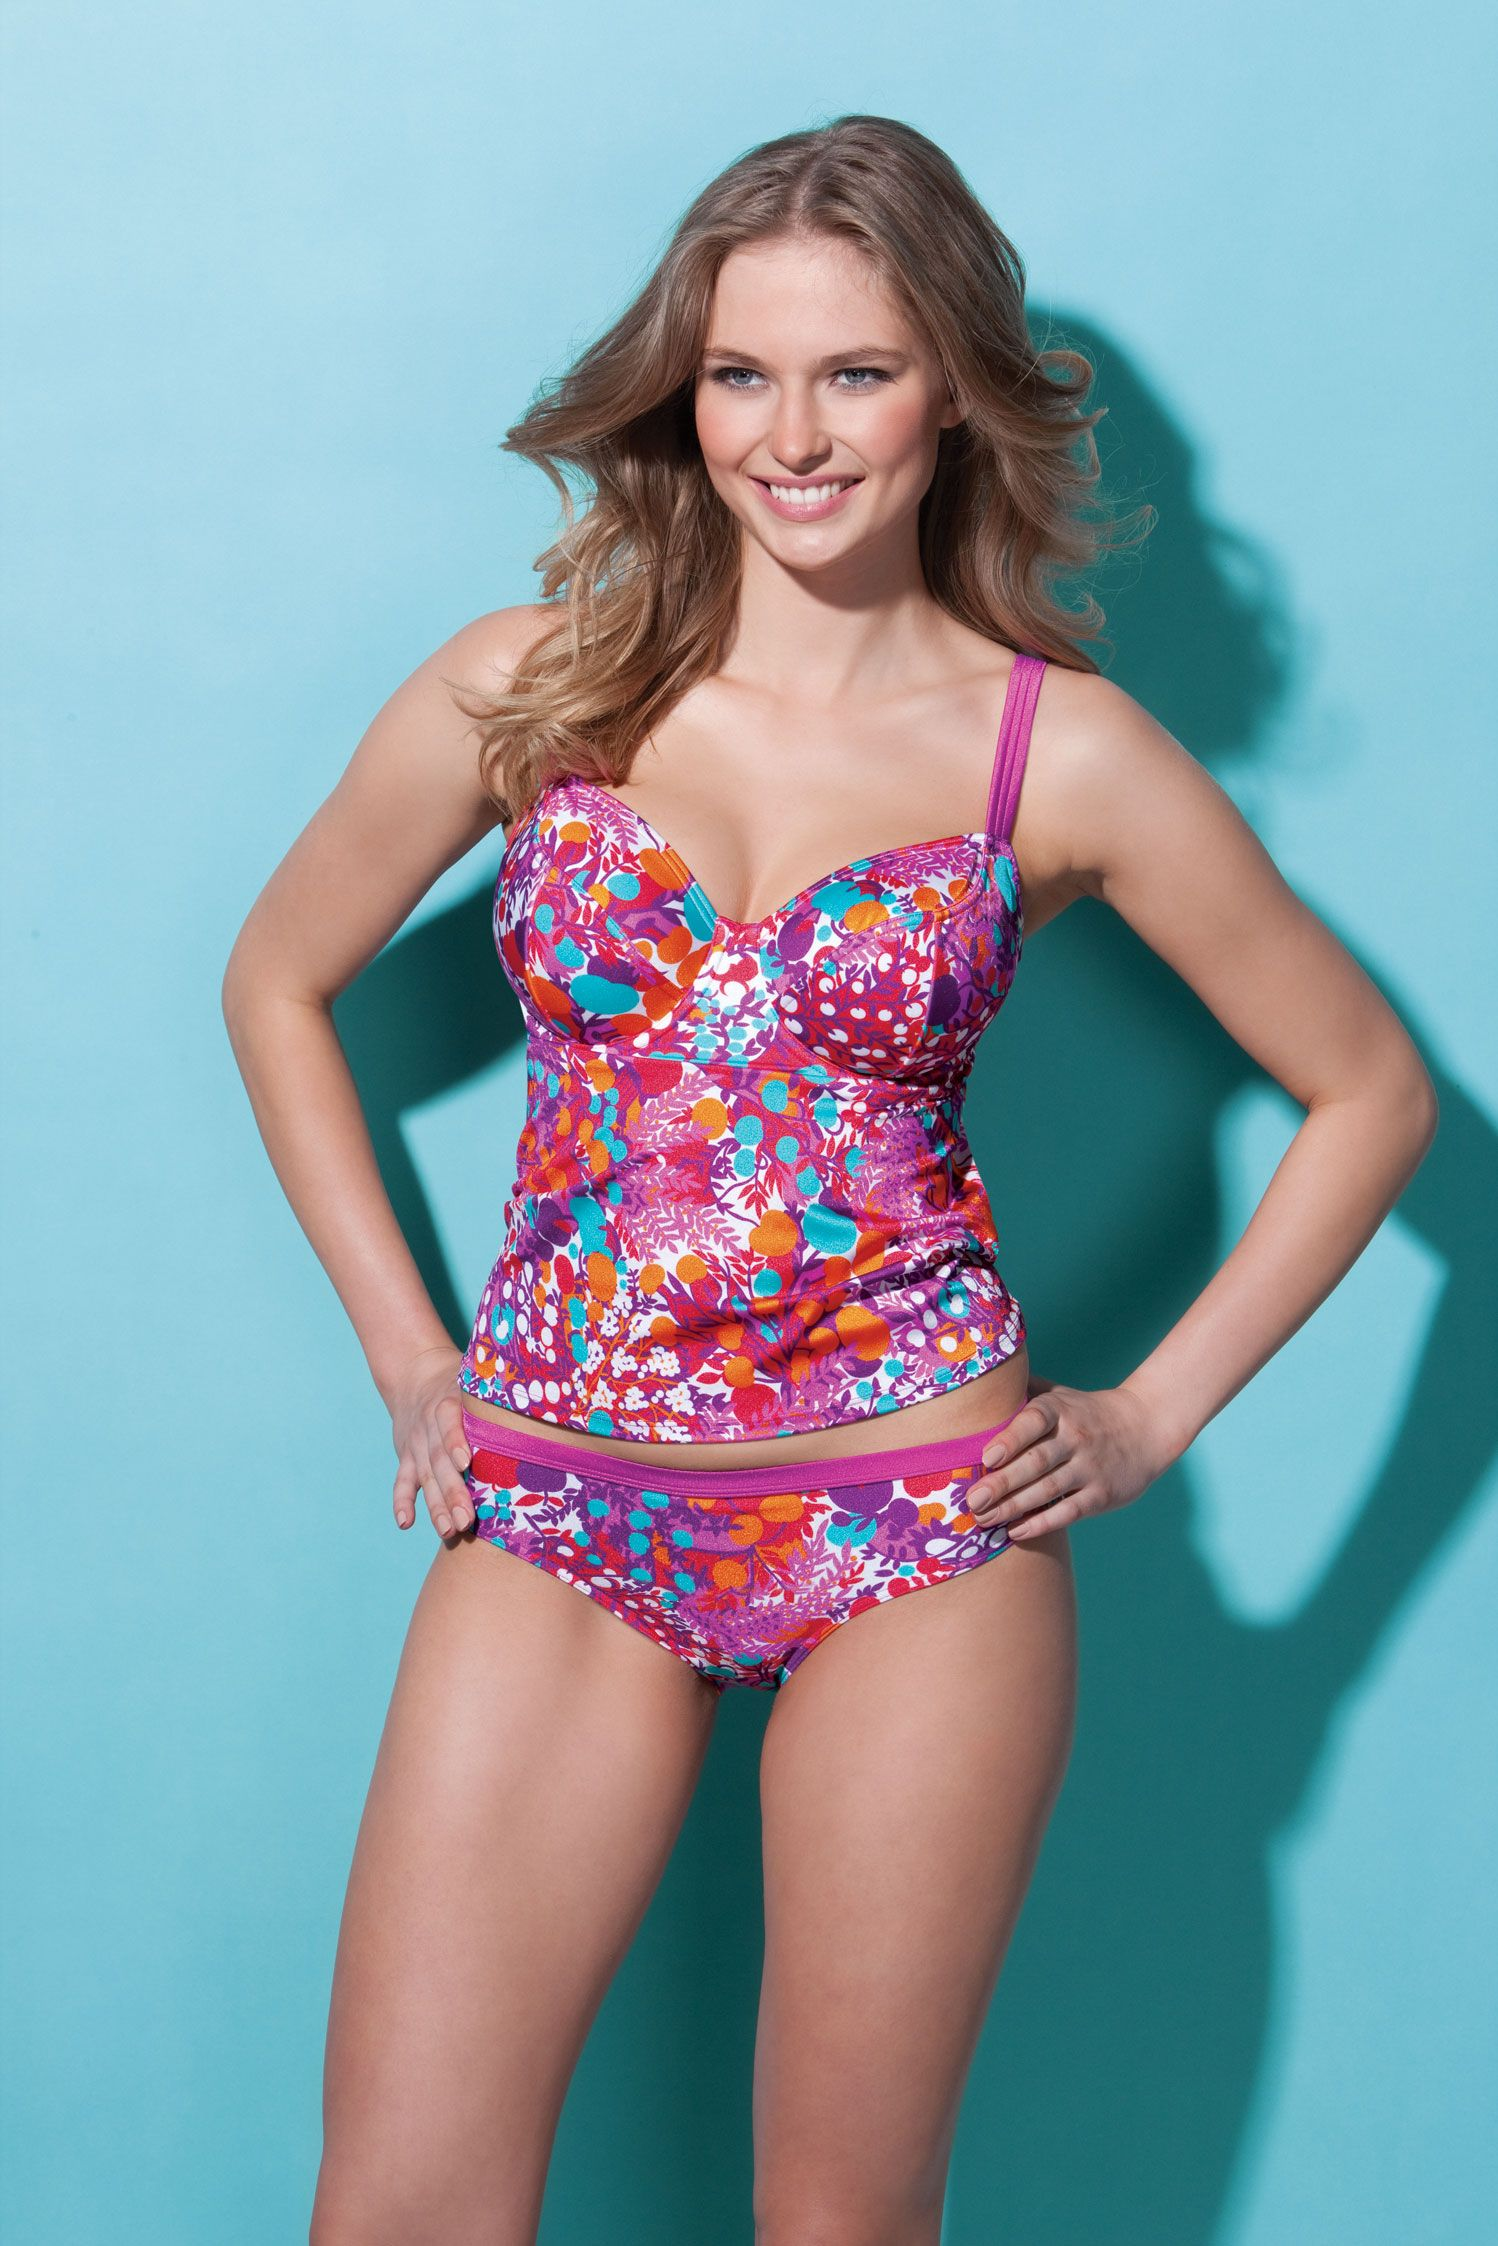 2b0ba04a4a Copacabana Tankini by Bravissimo in Tutti Frutti A new style from  Bravissimo Tankini top available in sizes 30-38 DD-K cup; £40.00 Matching  bottoms ...